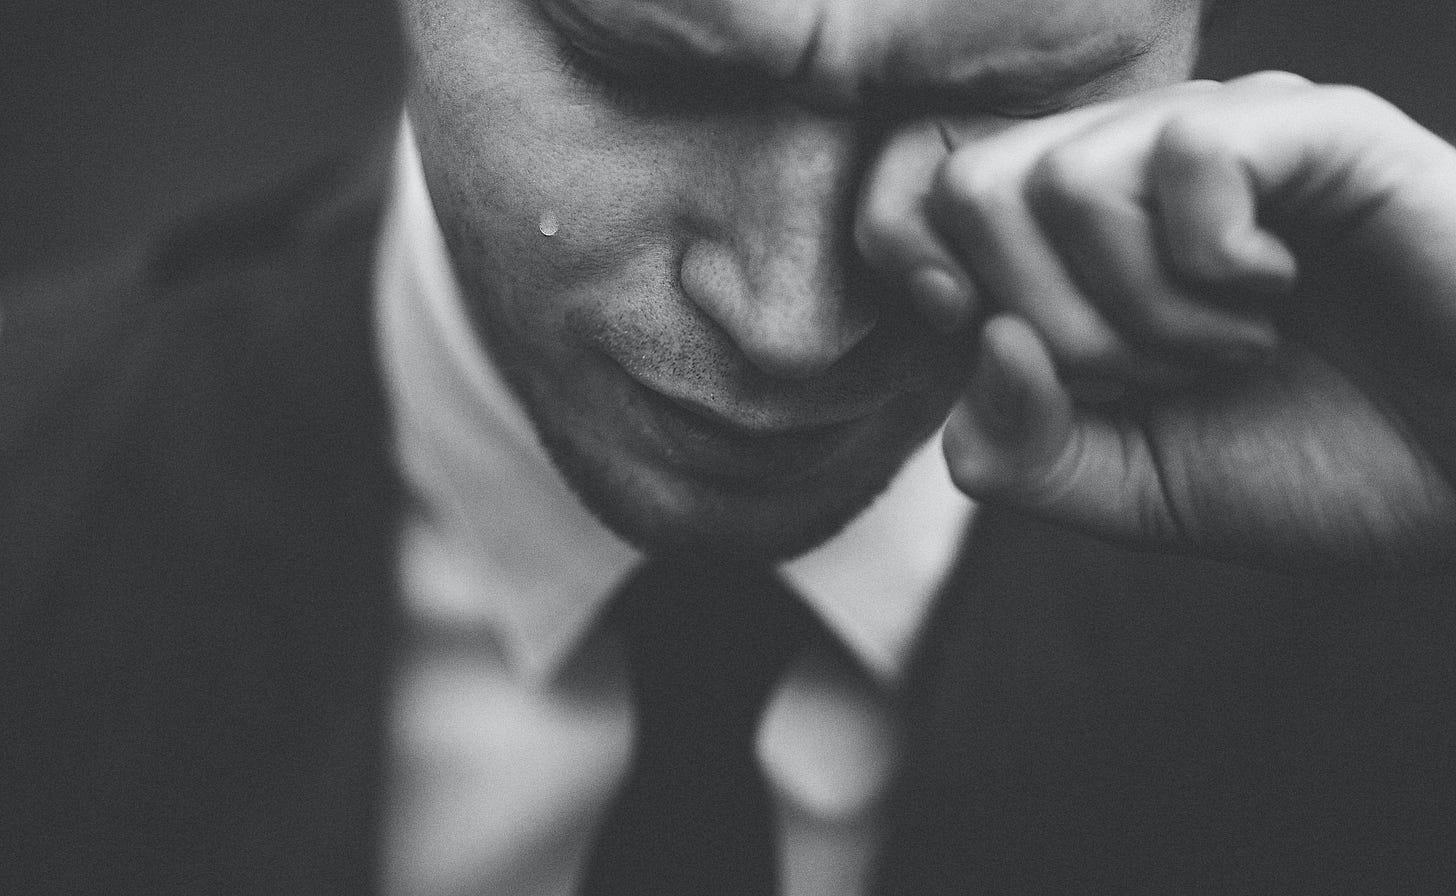 A man in a suit and tie crying.